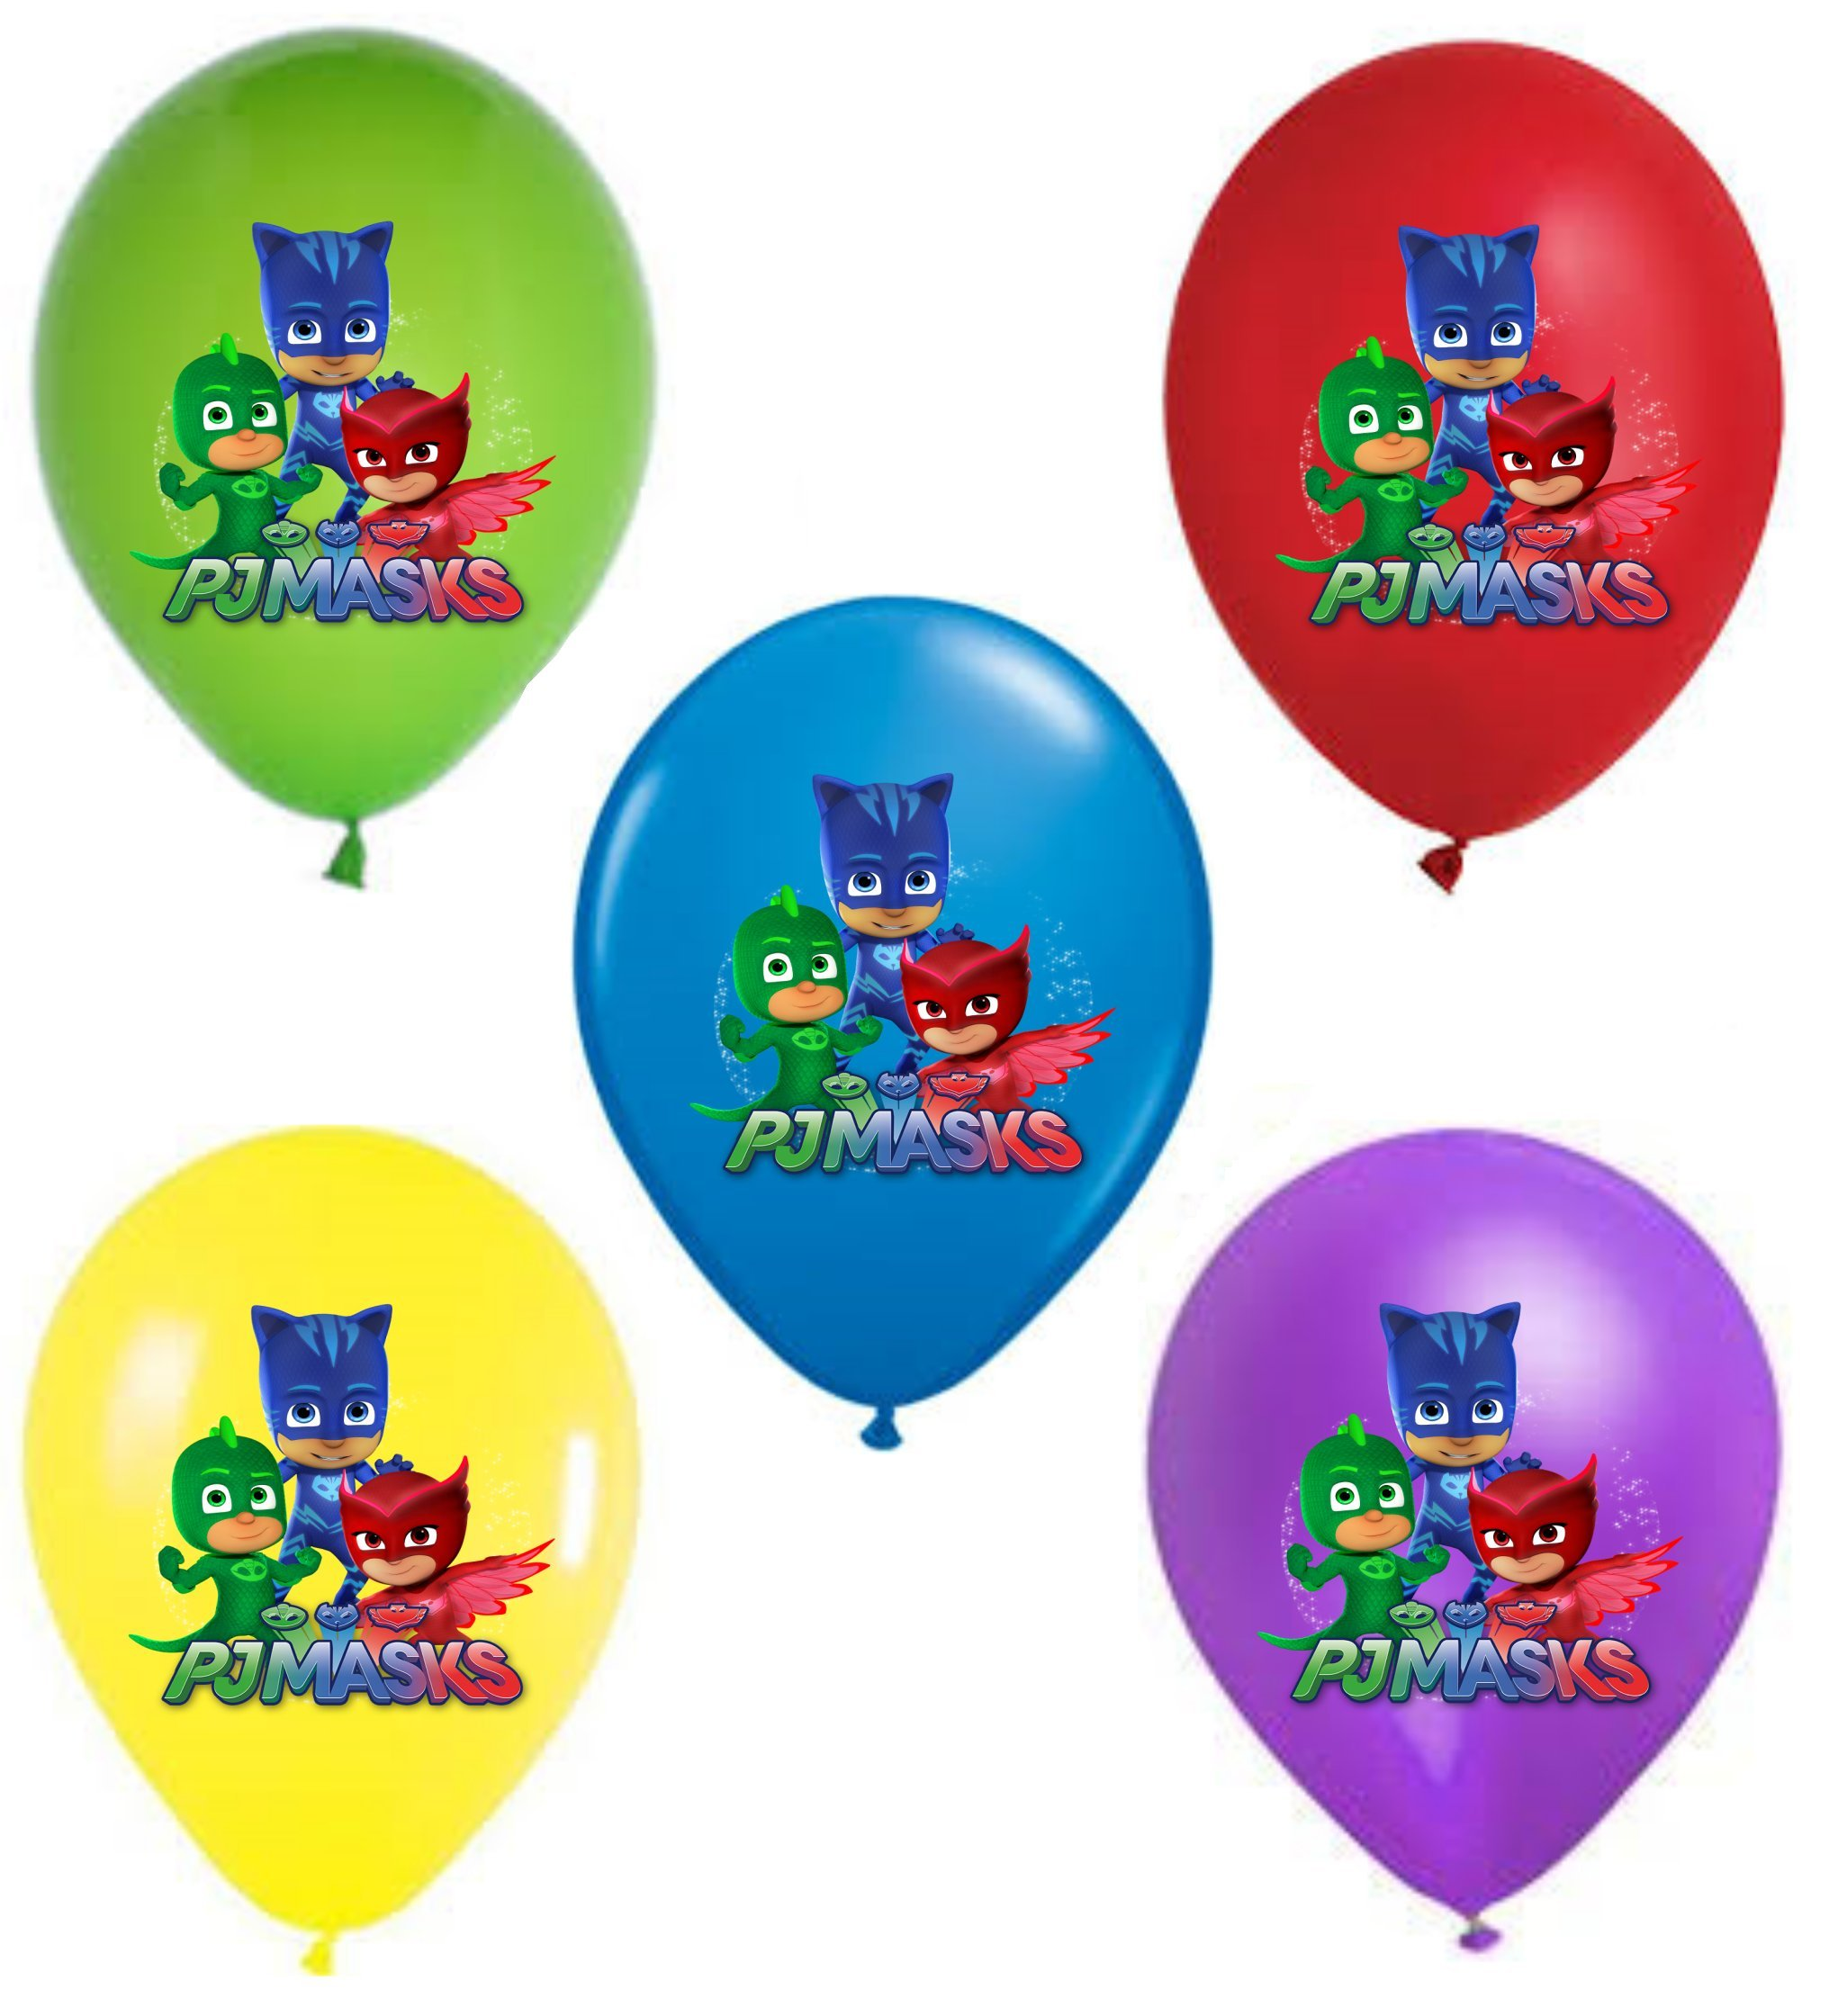 PJ Masks 12'' Party Balloons 25 pcs, assorted colors 2018 New Design